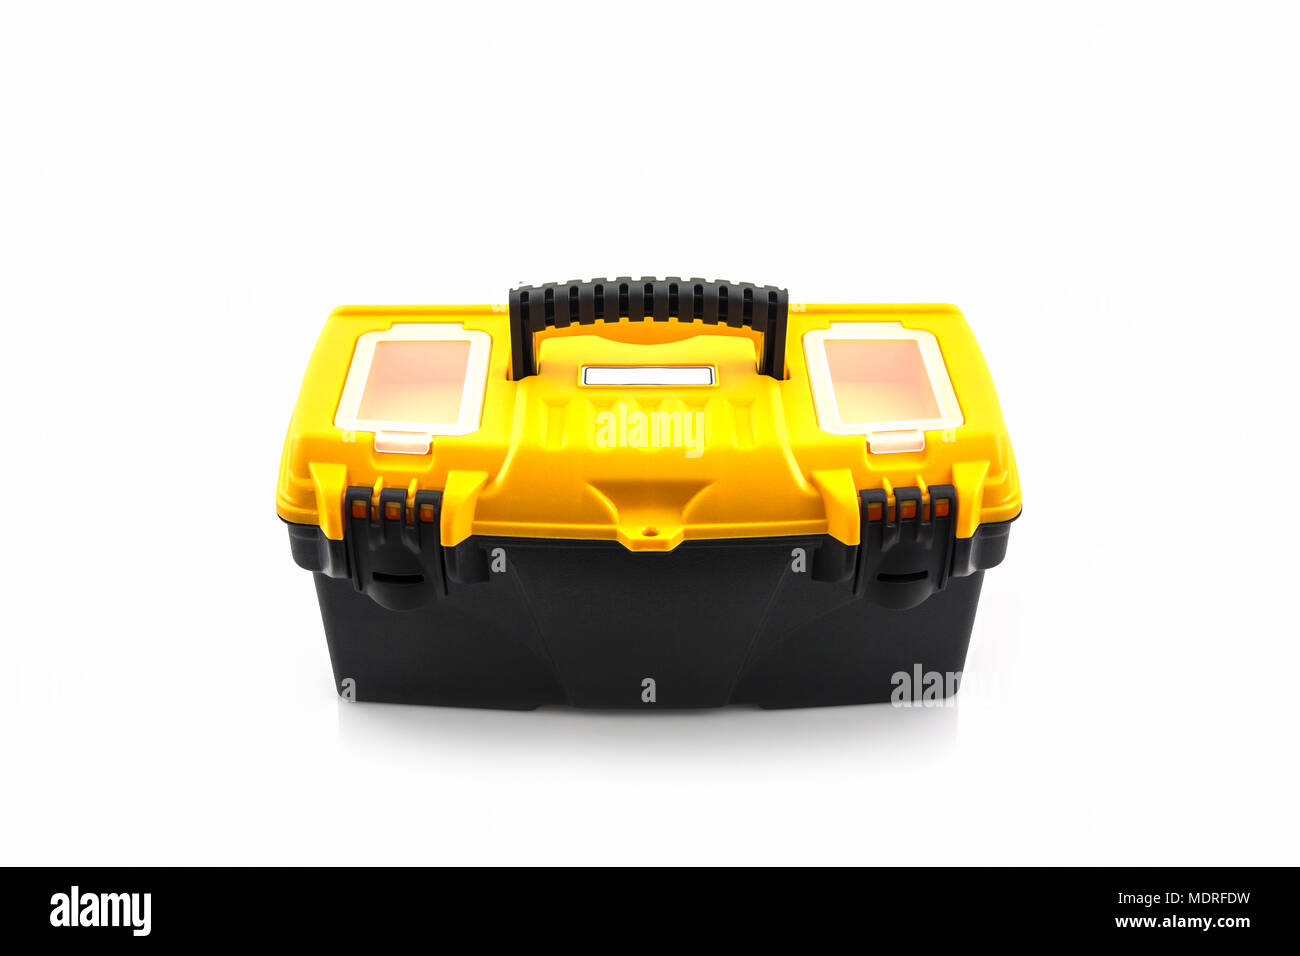 Yellow tool box, Plastic tool box on white background. - Stock Image